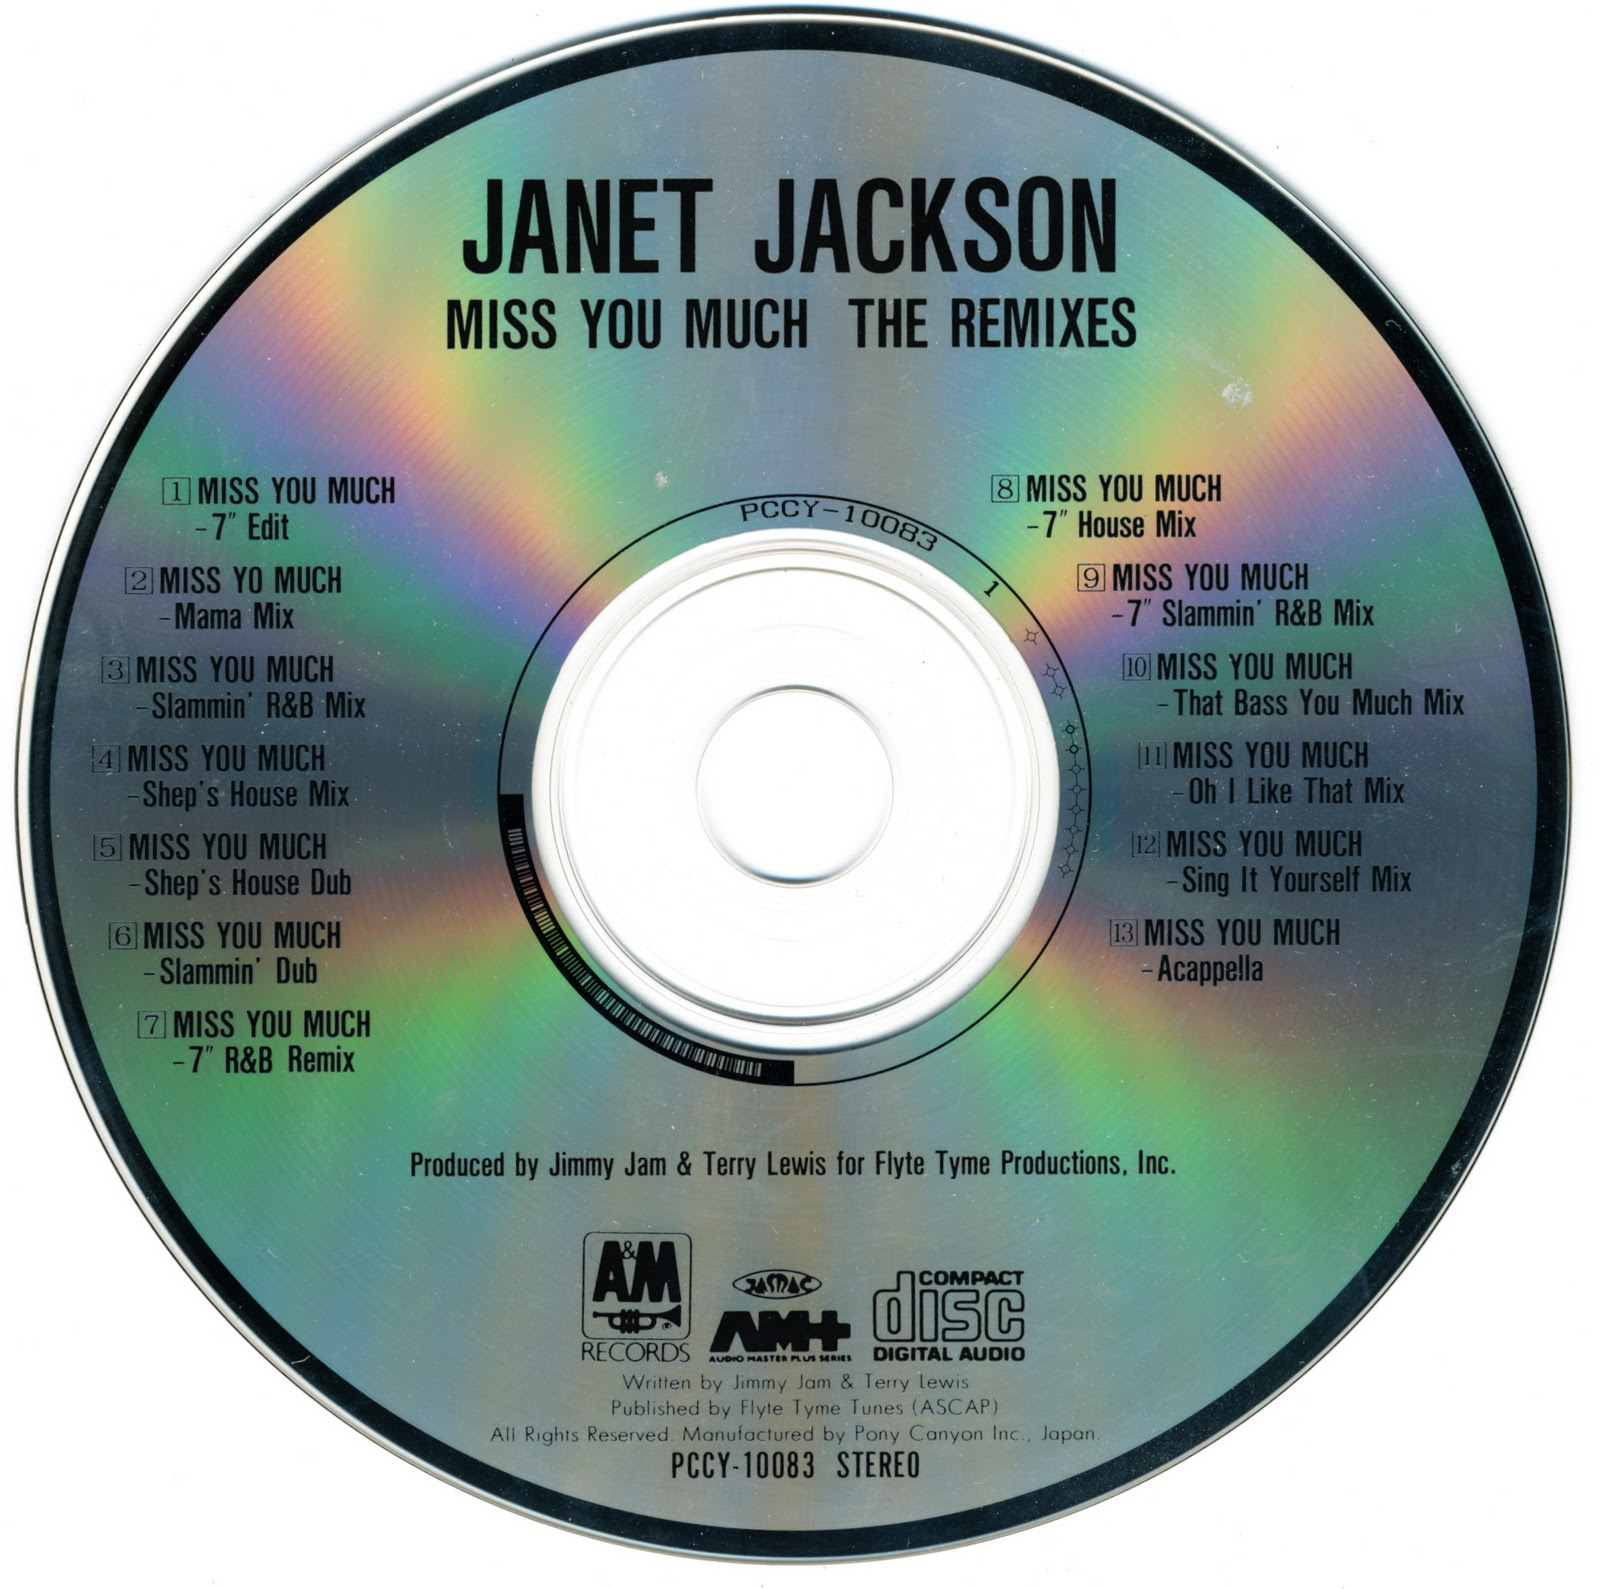 http://3.bp.blogspot.com/-UPfKdDBf48Q/ToO1oD_HMYI/AAAAAAAACeI/JZzGTl3Xch8/s1600/Janet+Miss+You+CD.jpg